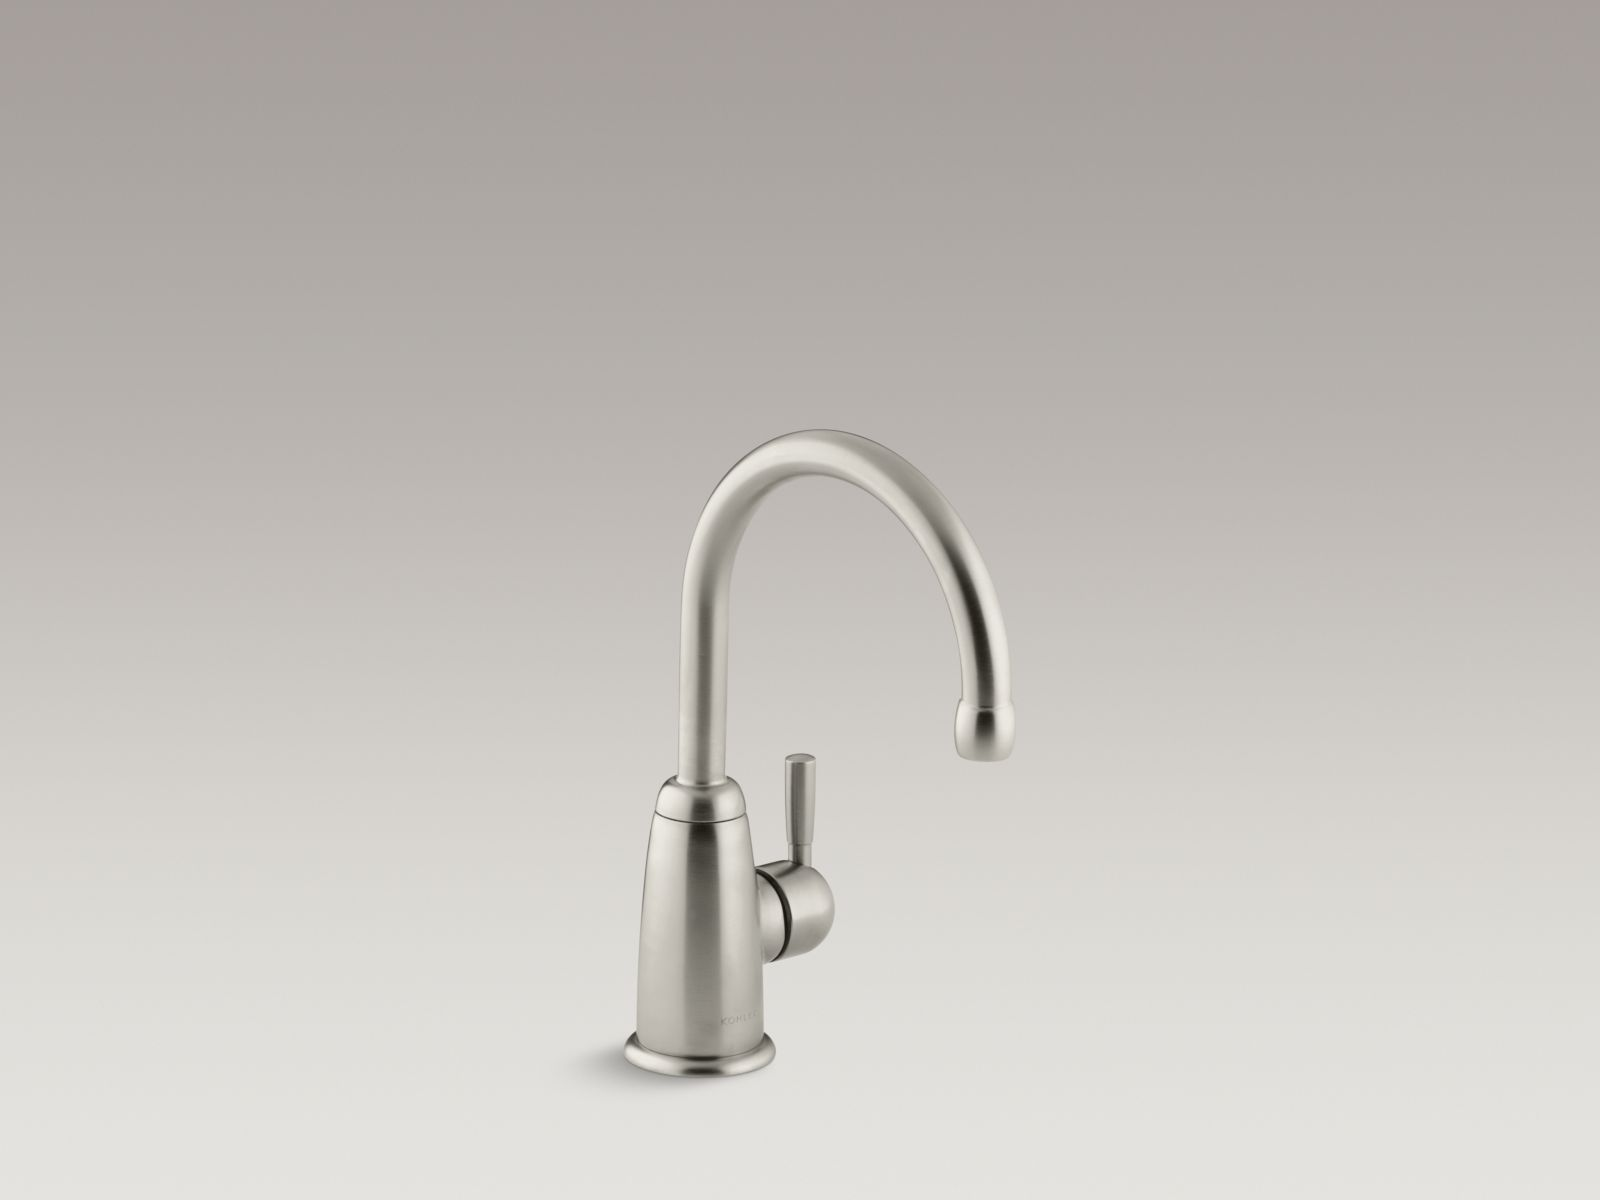 Kohler K-6665-BN Wellspring Single-handle Beverage Faucet with Contemporary Design Brushed Nickel